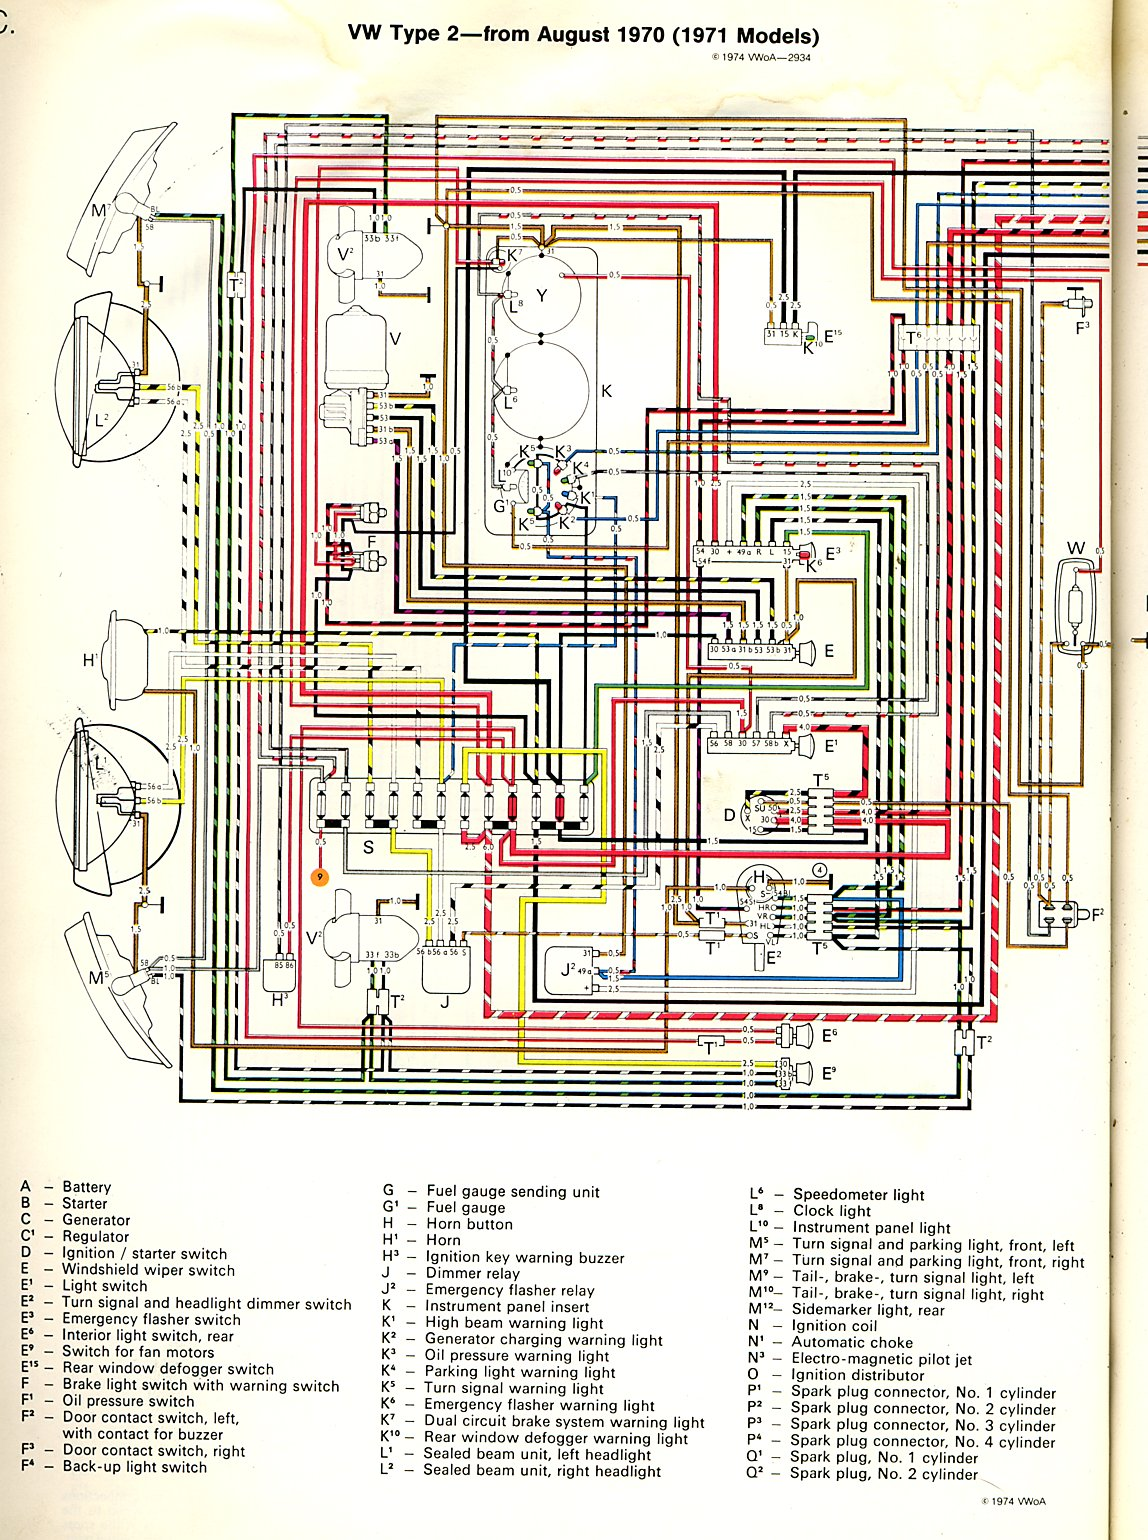 baybus_71a thesamba com type 2 wiring diagrams 1971 corvette wiring diagram at honlapkeszites.co